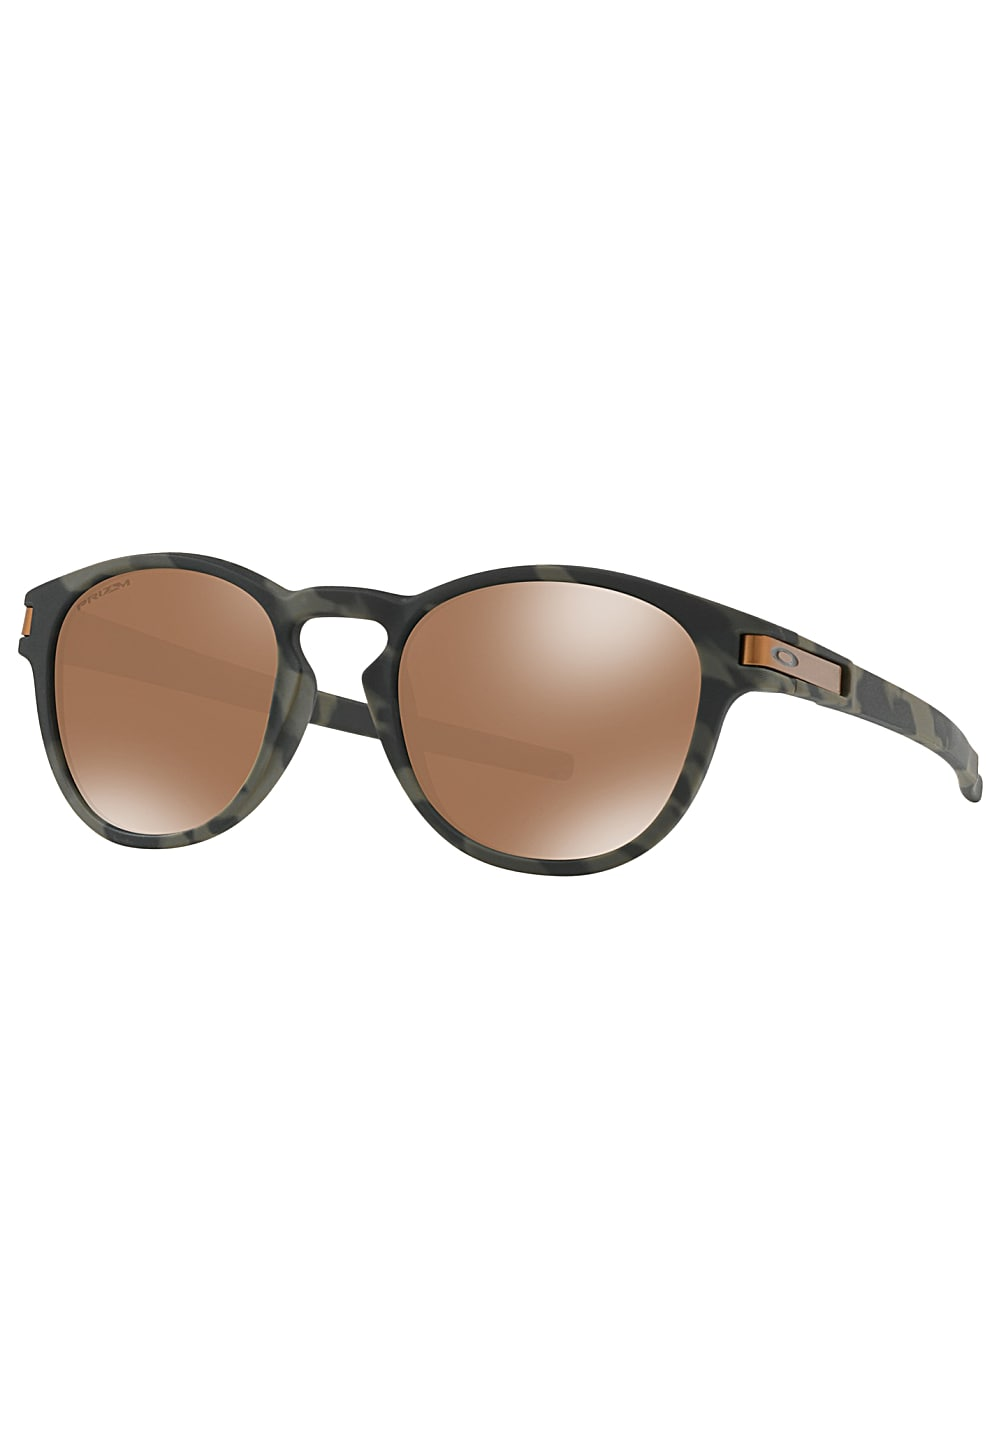 1f44878727 Next. OAKLEY. Latch Olive Camo - Sunglasses. €151.95. incl. VAT plus  shipping costs. Size Chart.